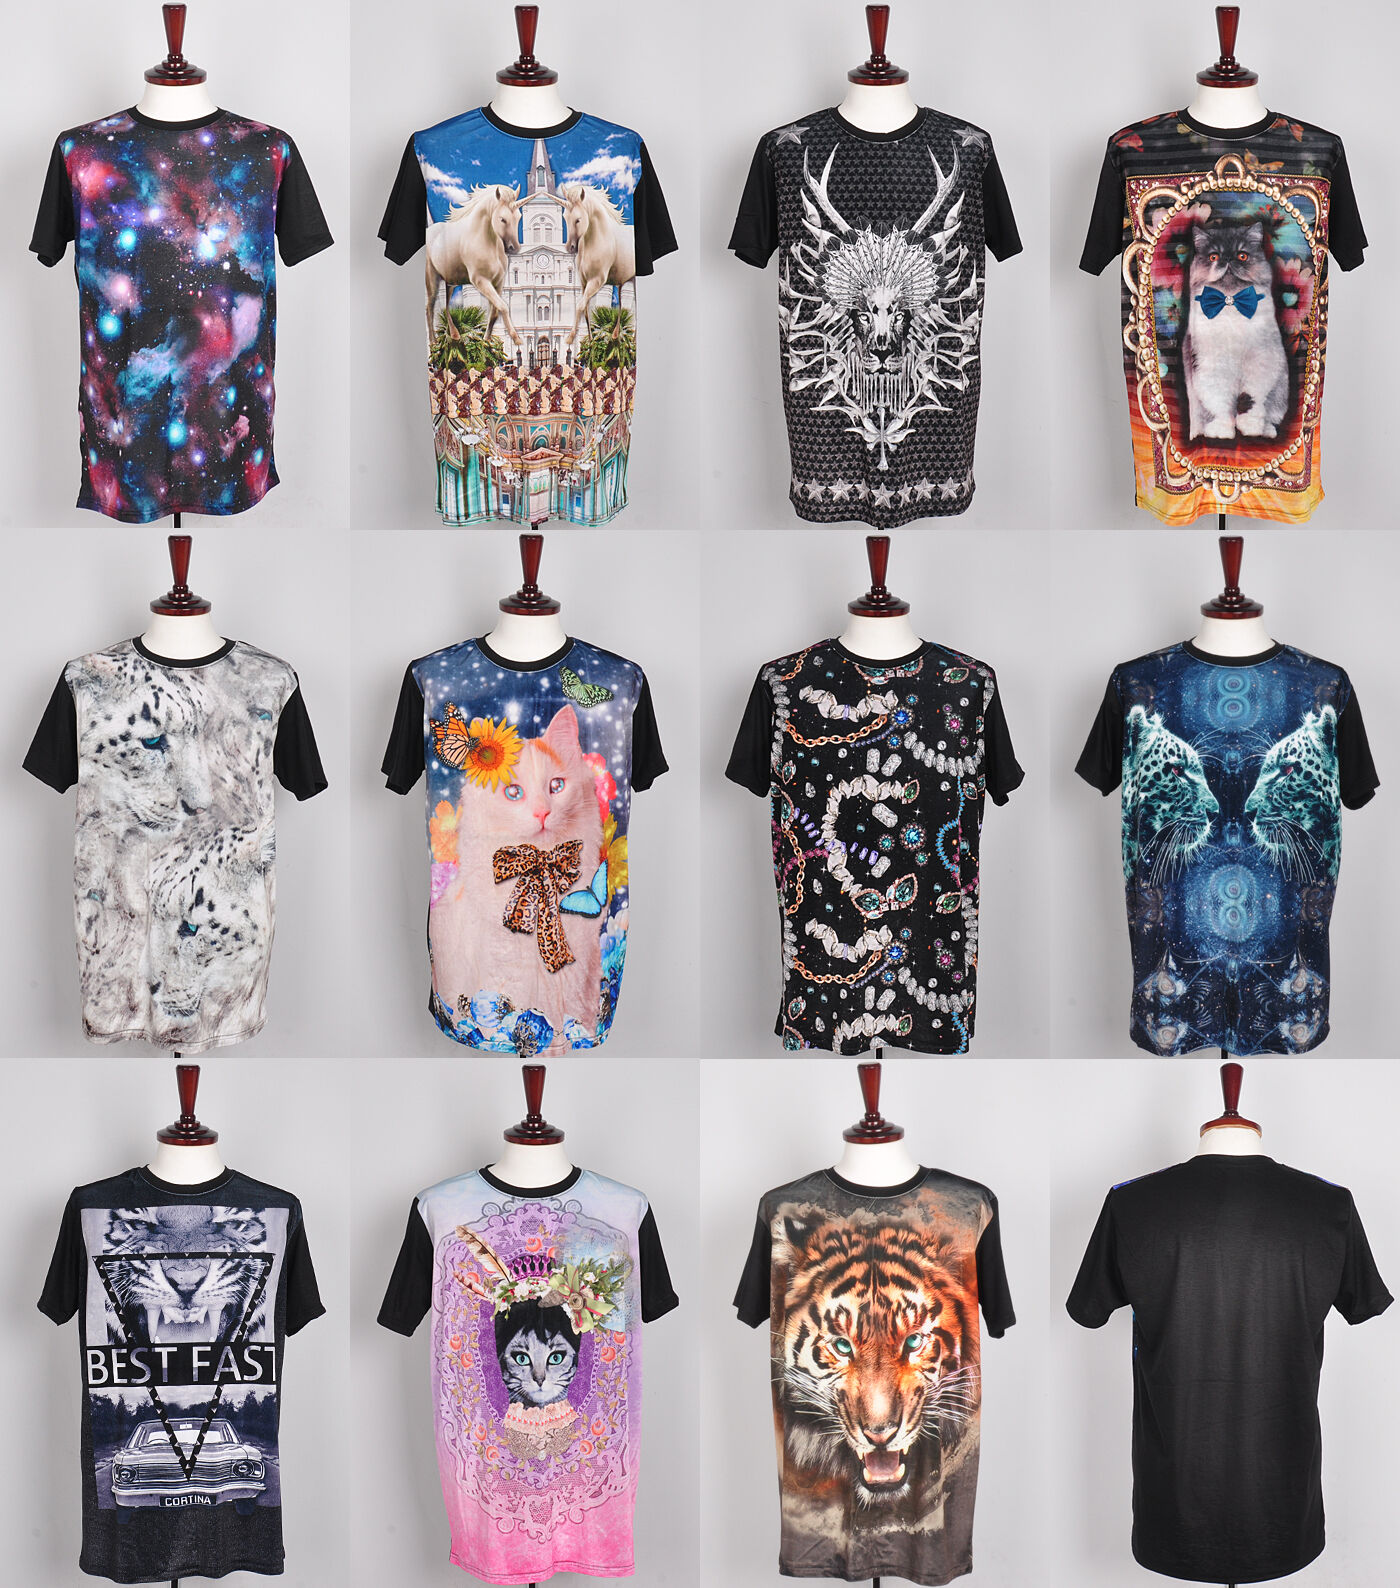 New Unisex womens Velvet galaxy space t shirt cat print short sleeve top blouse